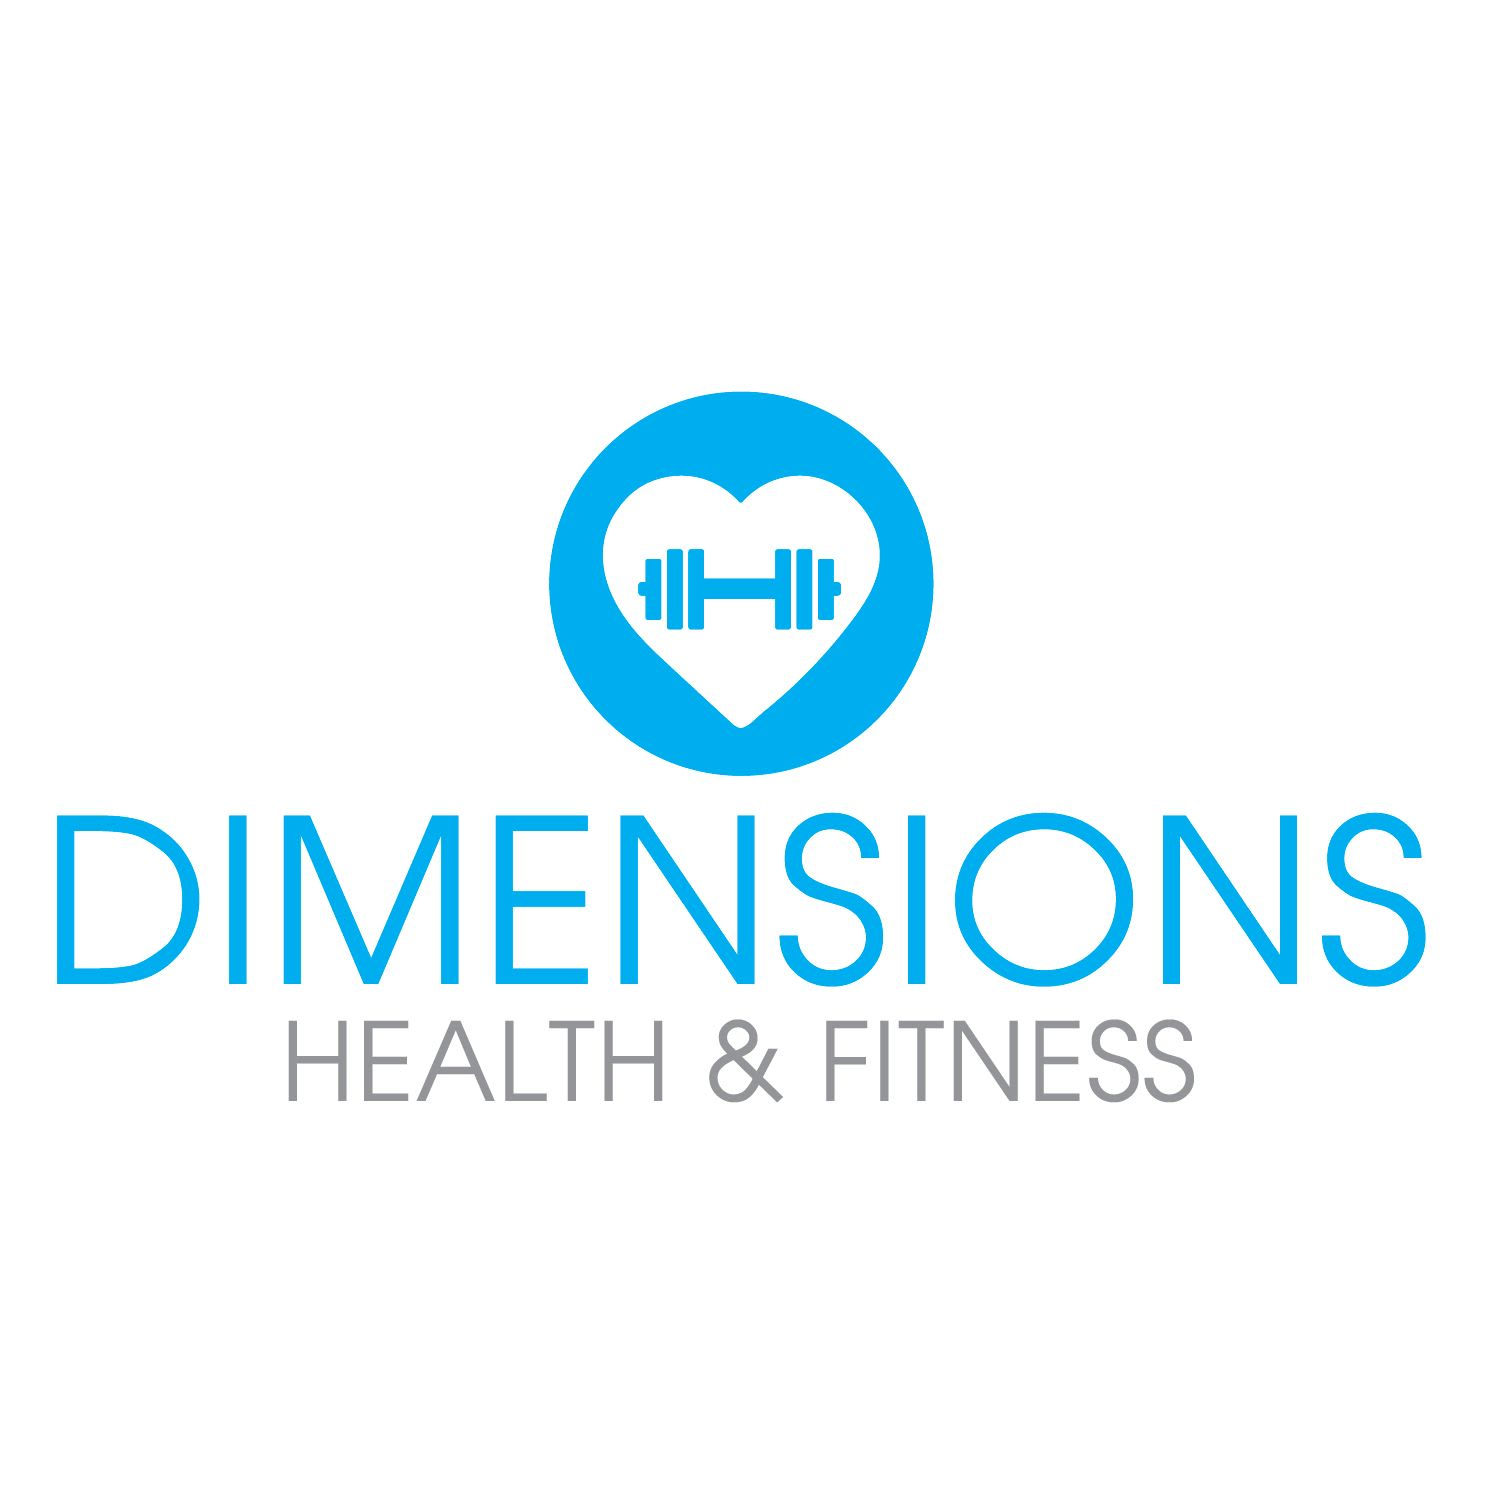 Senior living wellness dimensions in Fort Worth, Texas